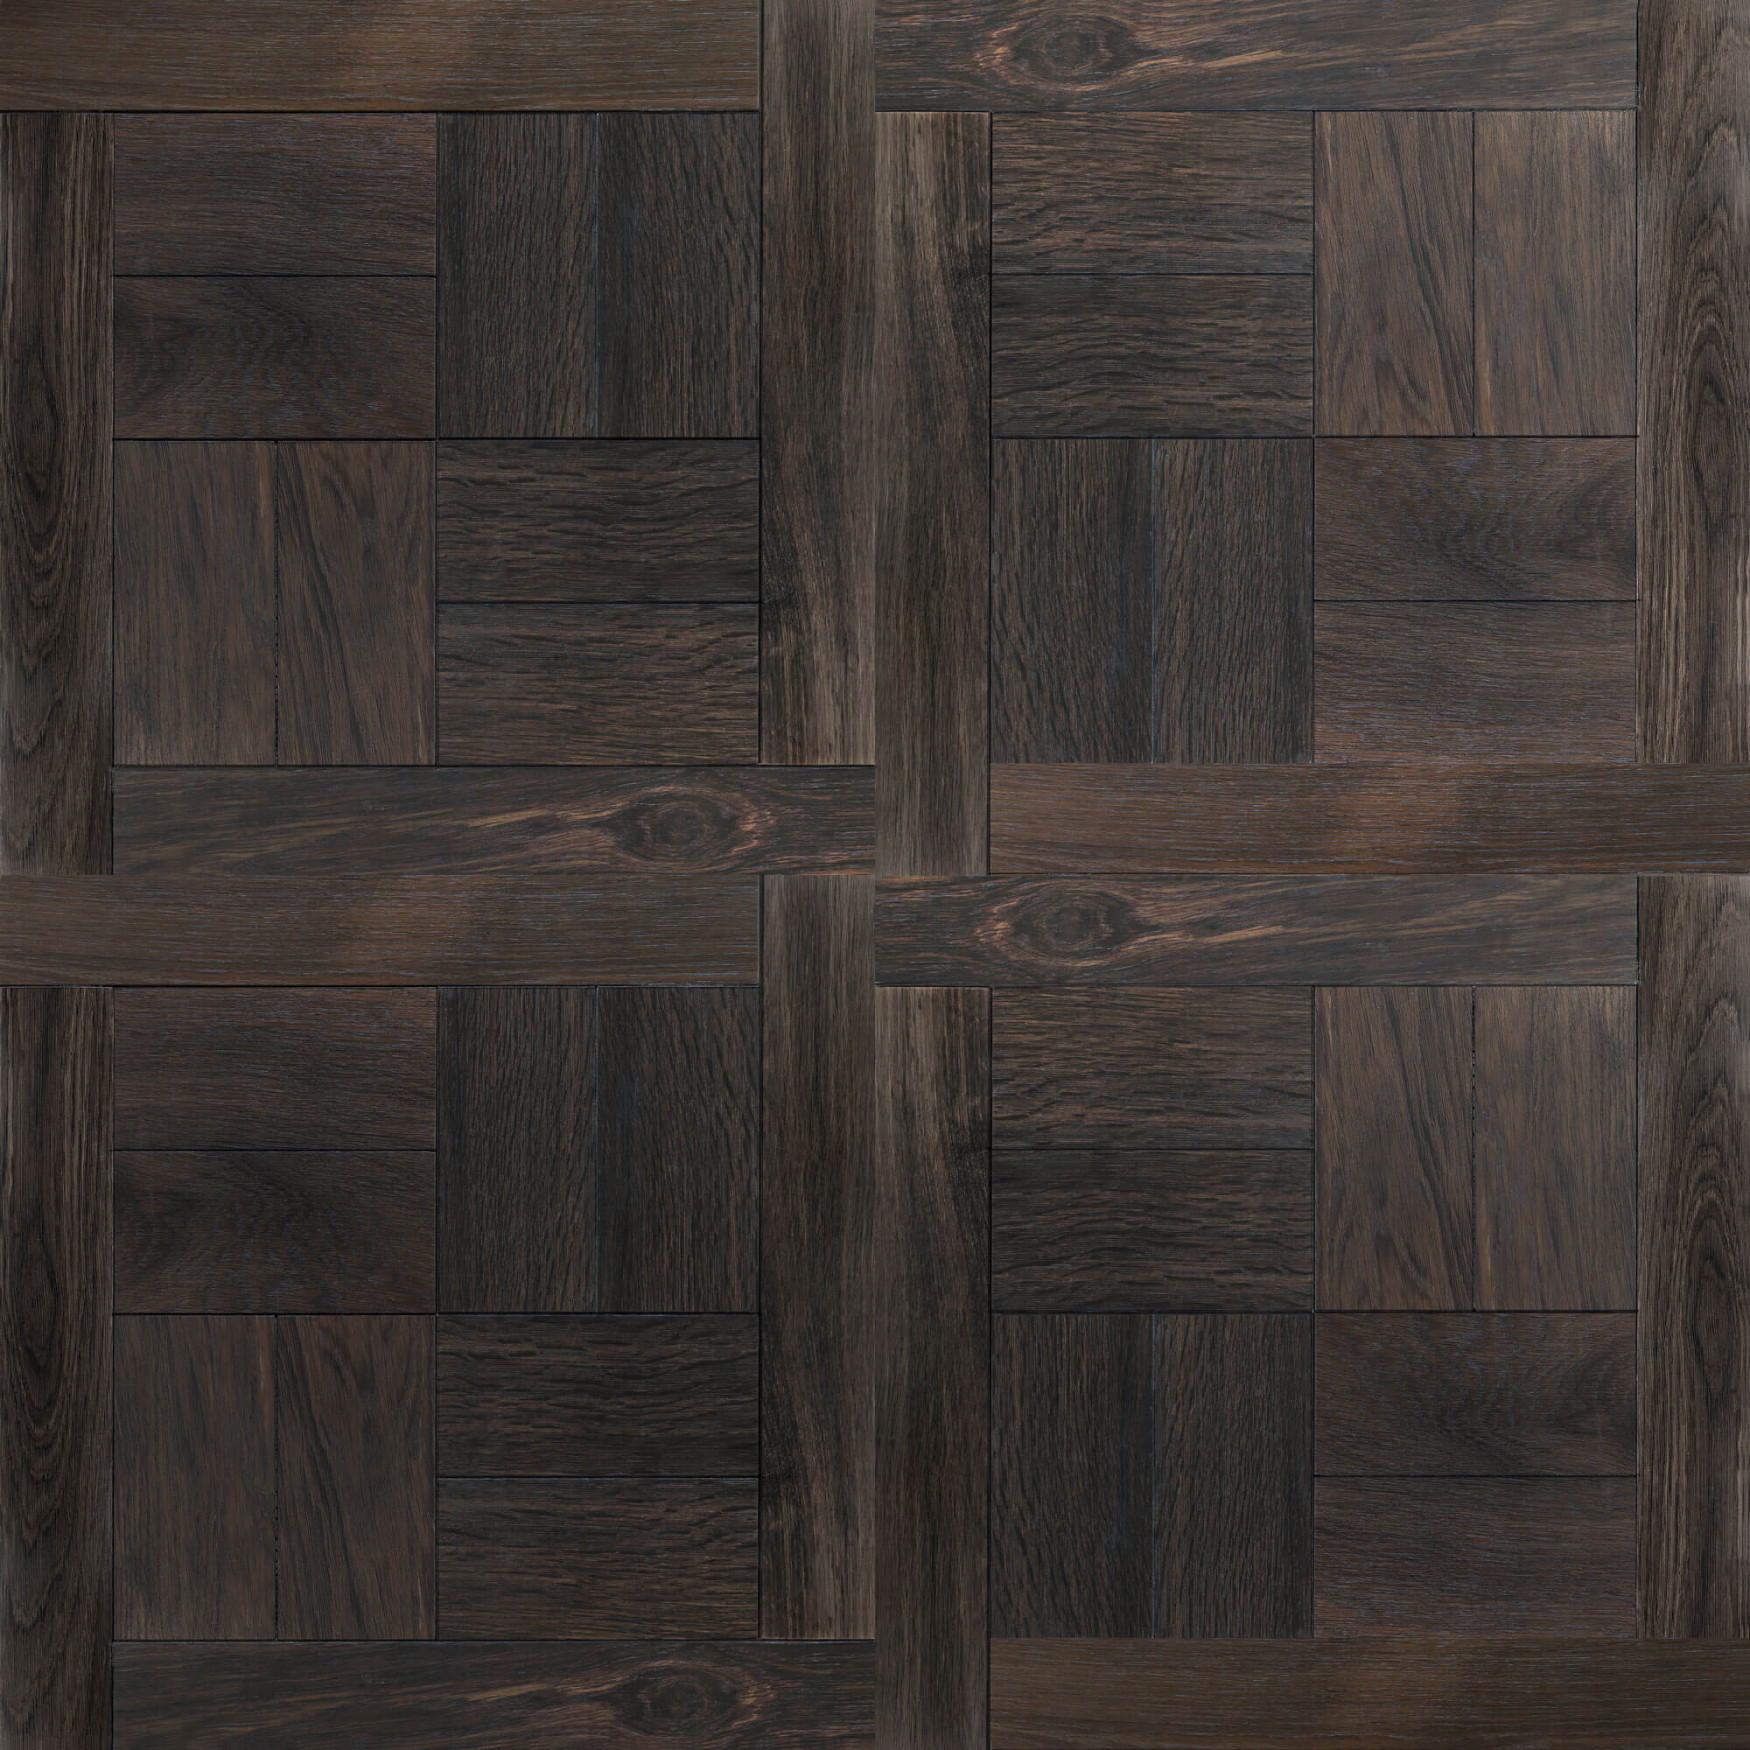 Dark Parisian Oak – MOD 262 4 Grid Panels